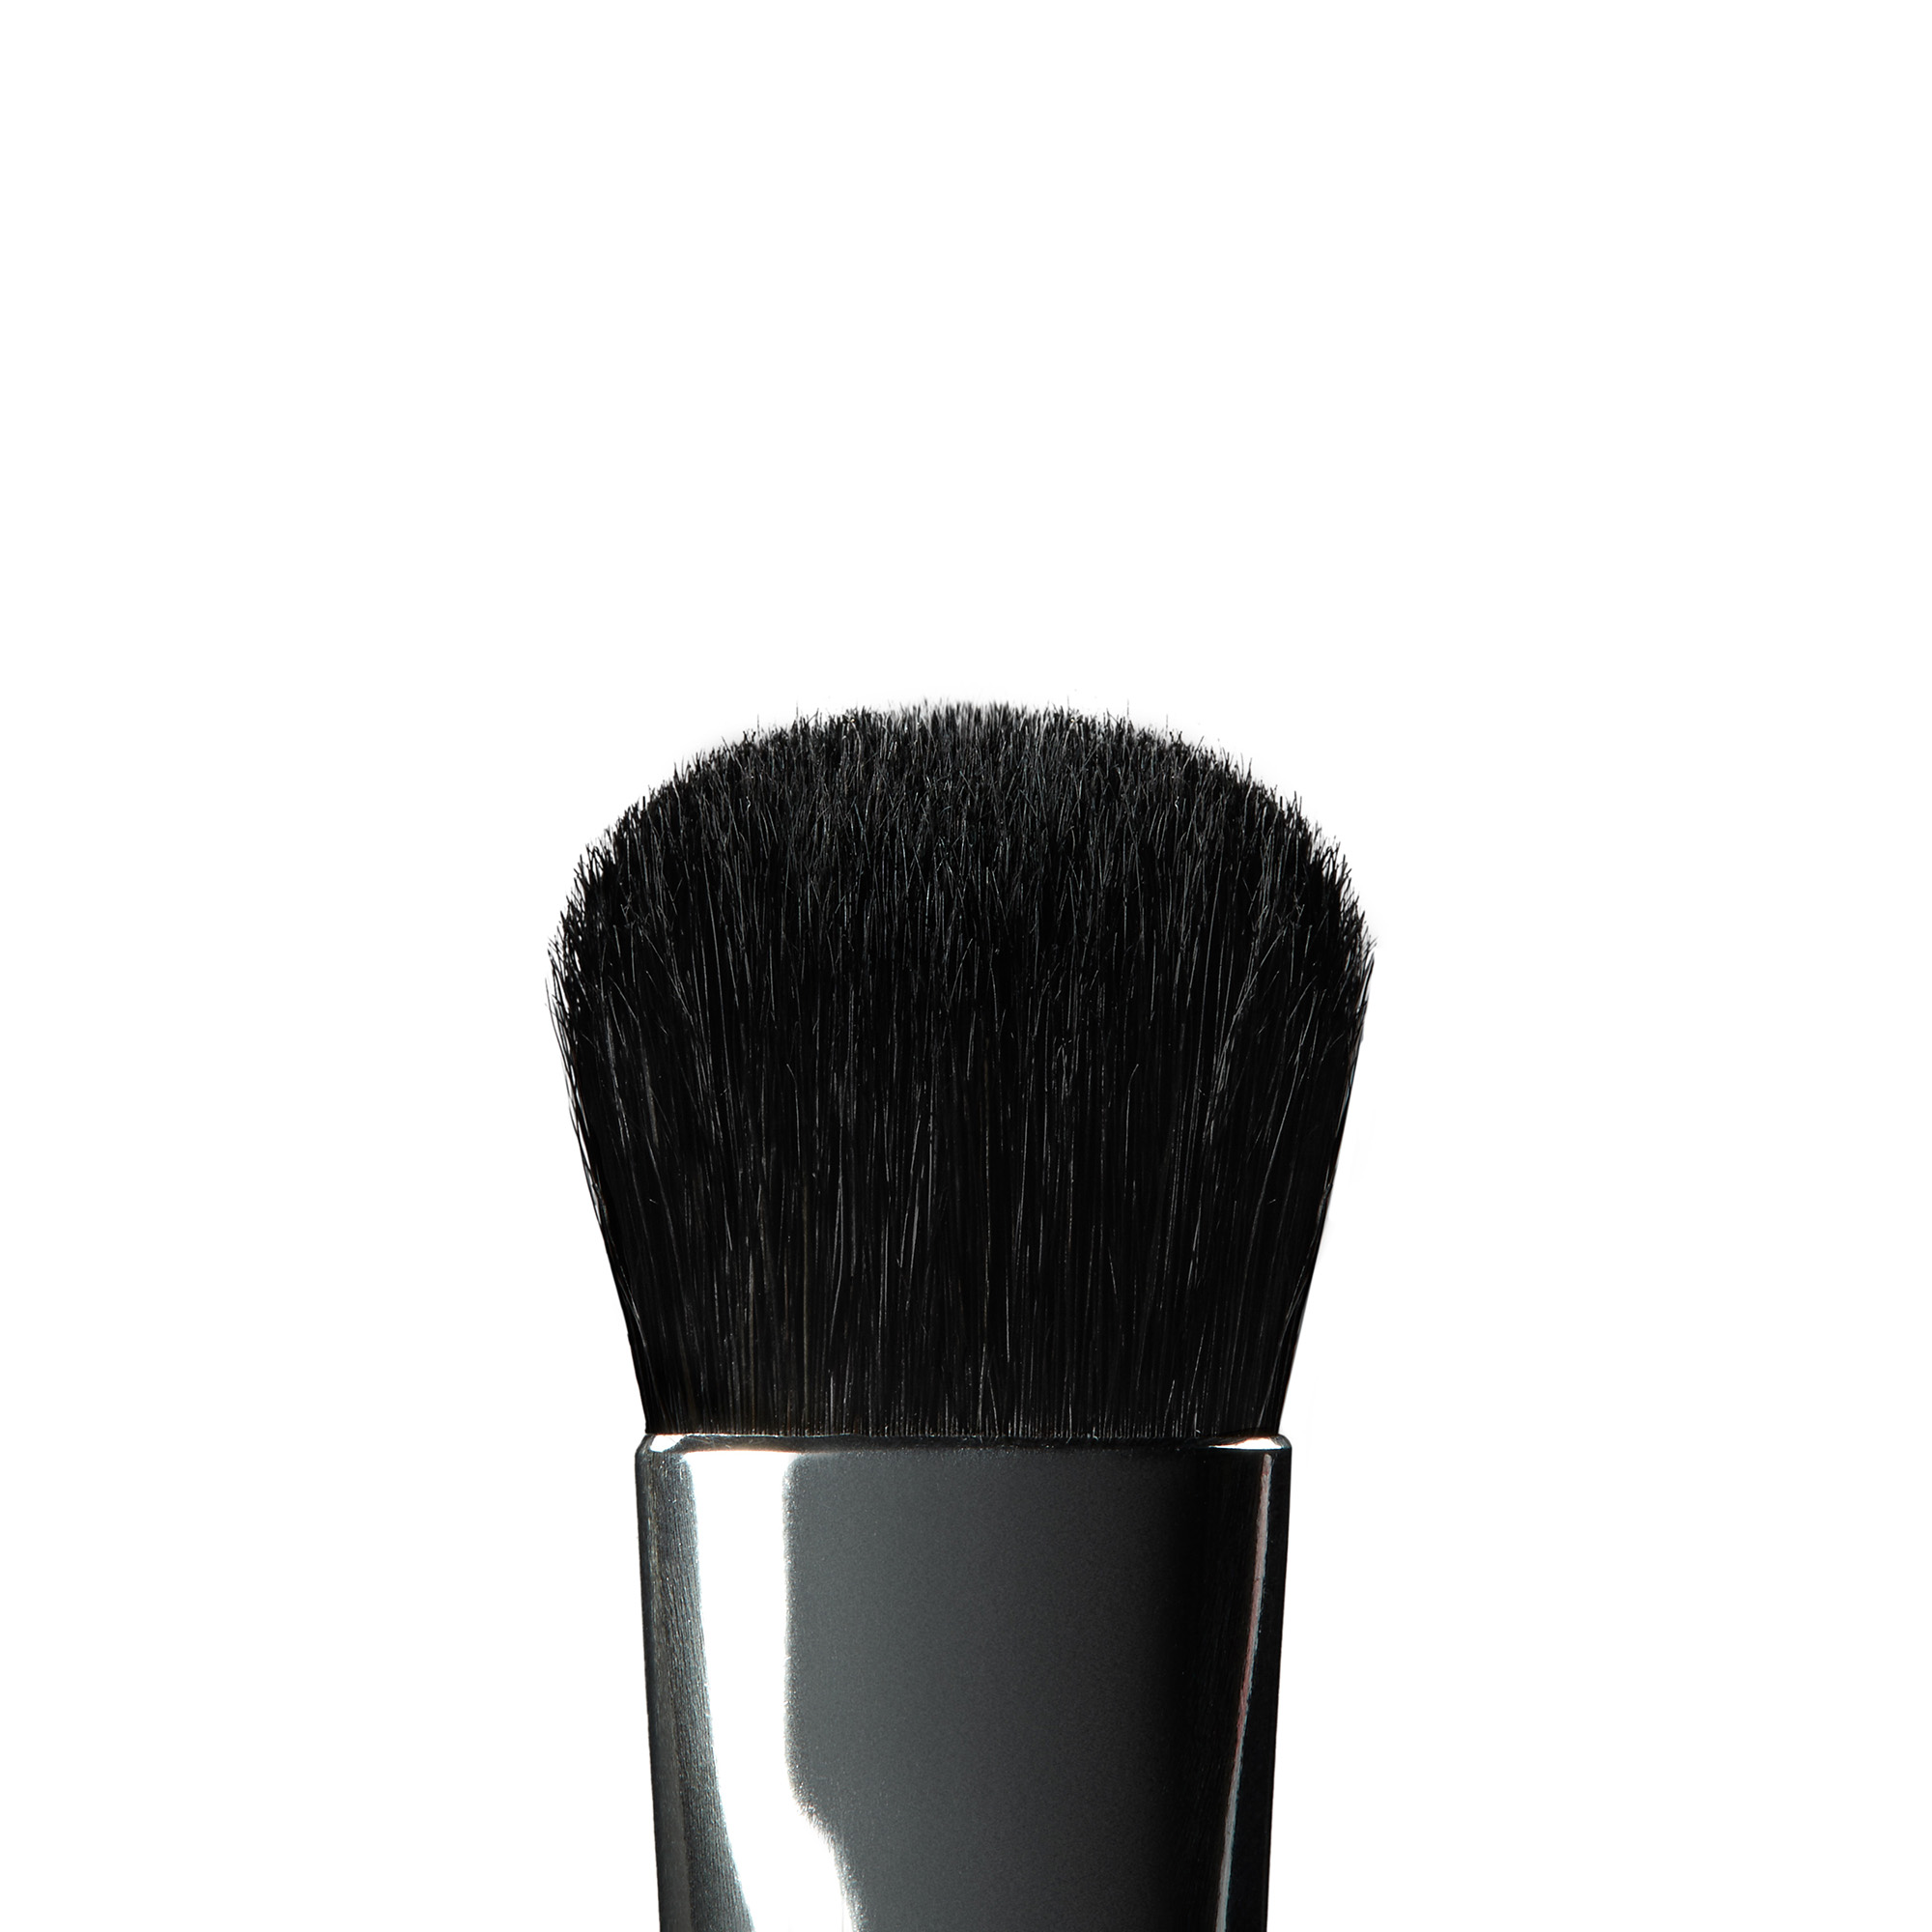 Pro Brush- A13 Medium Shader Brush